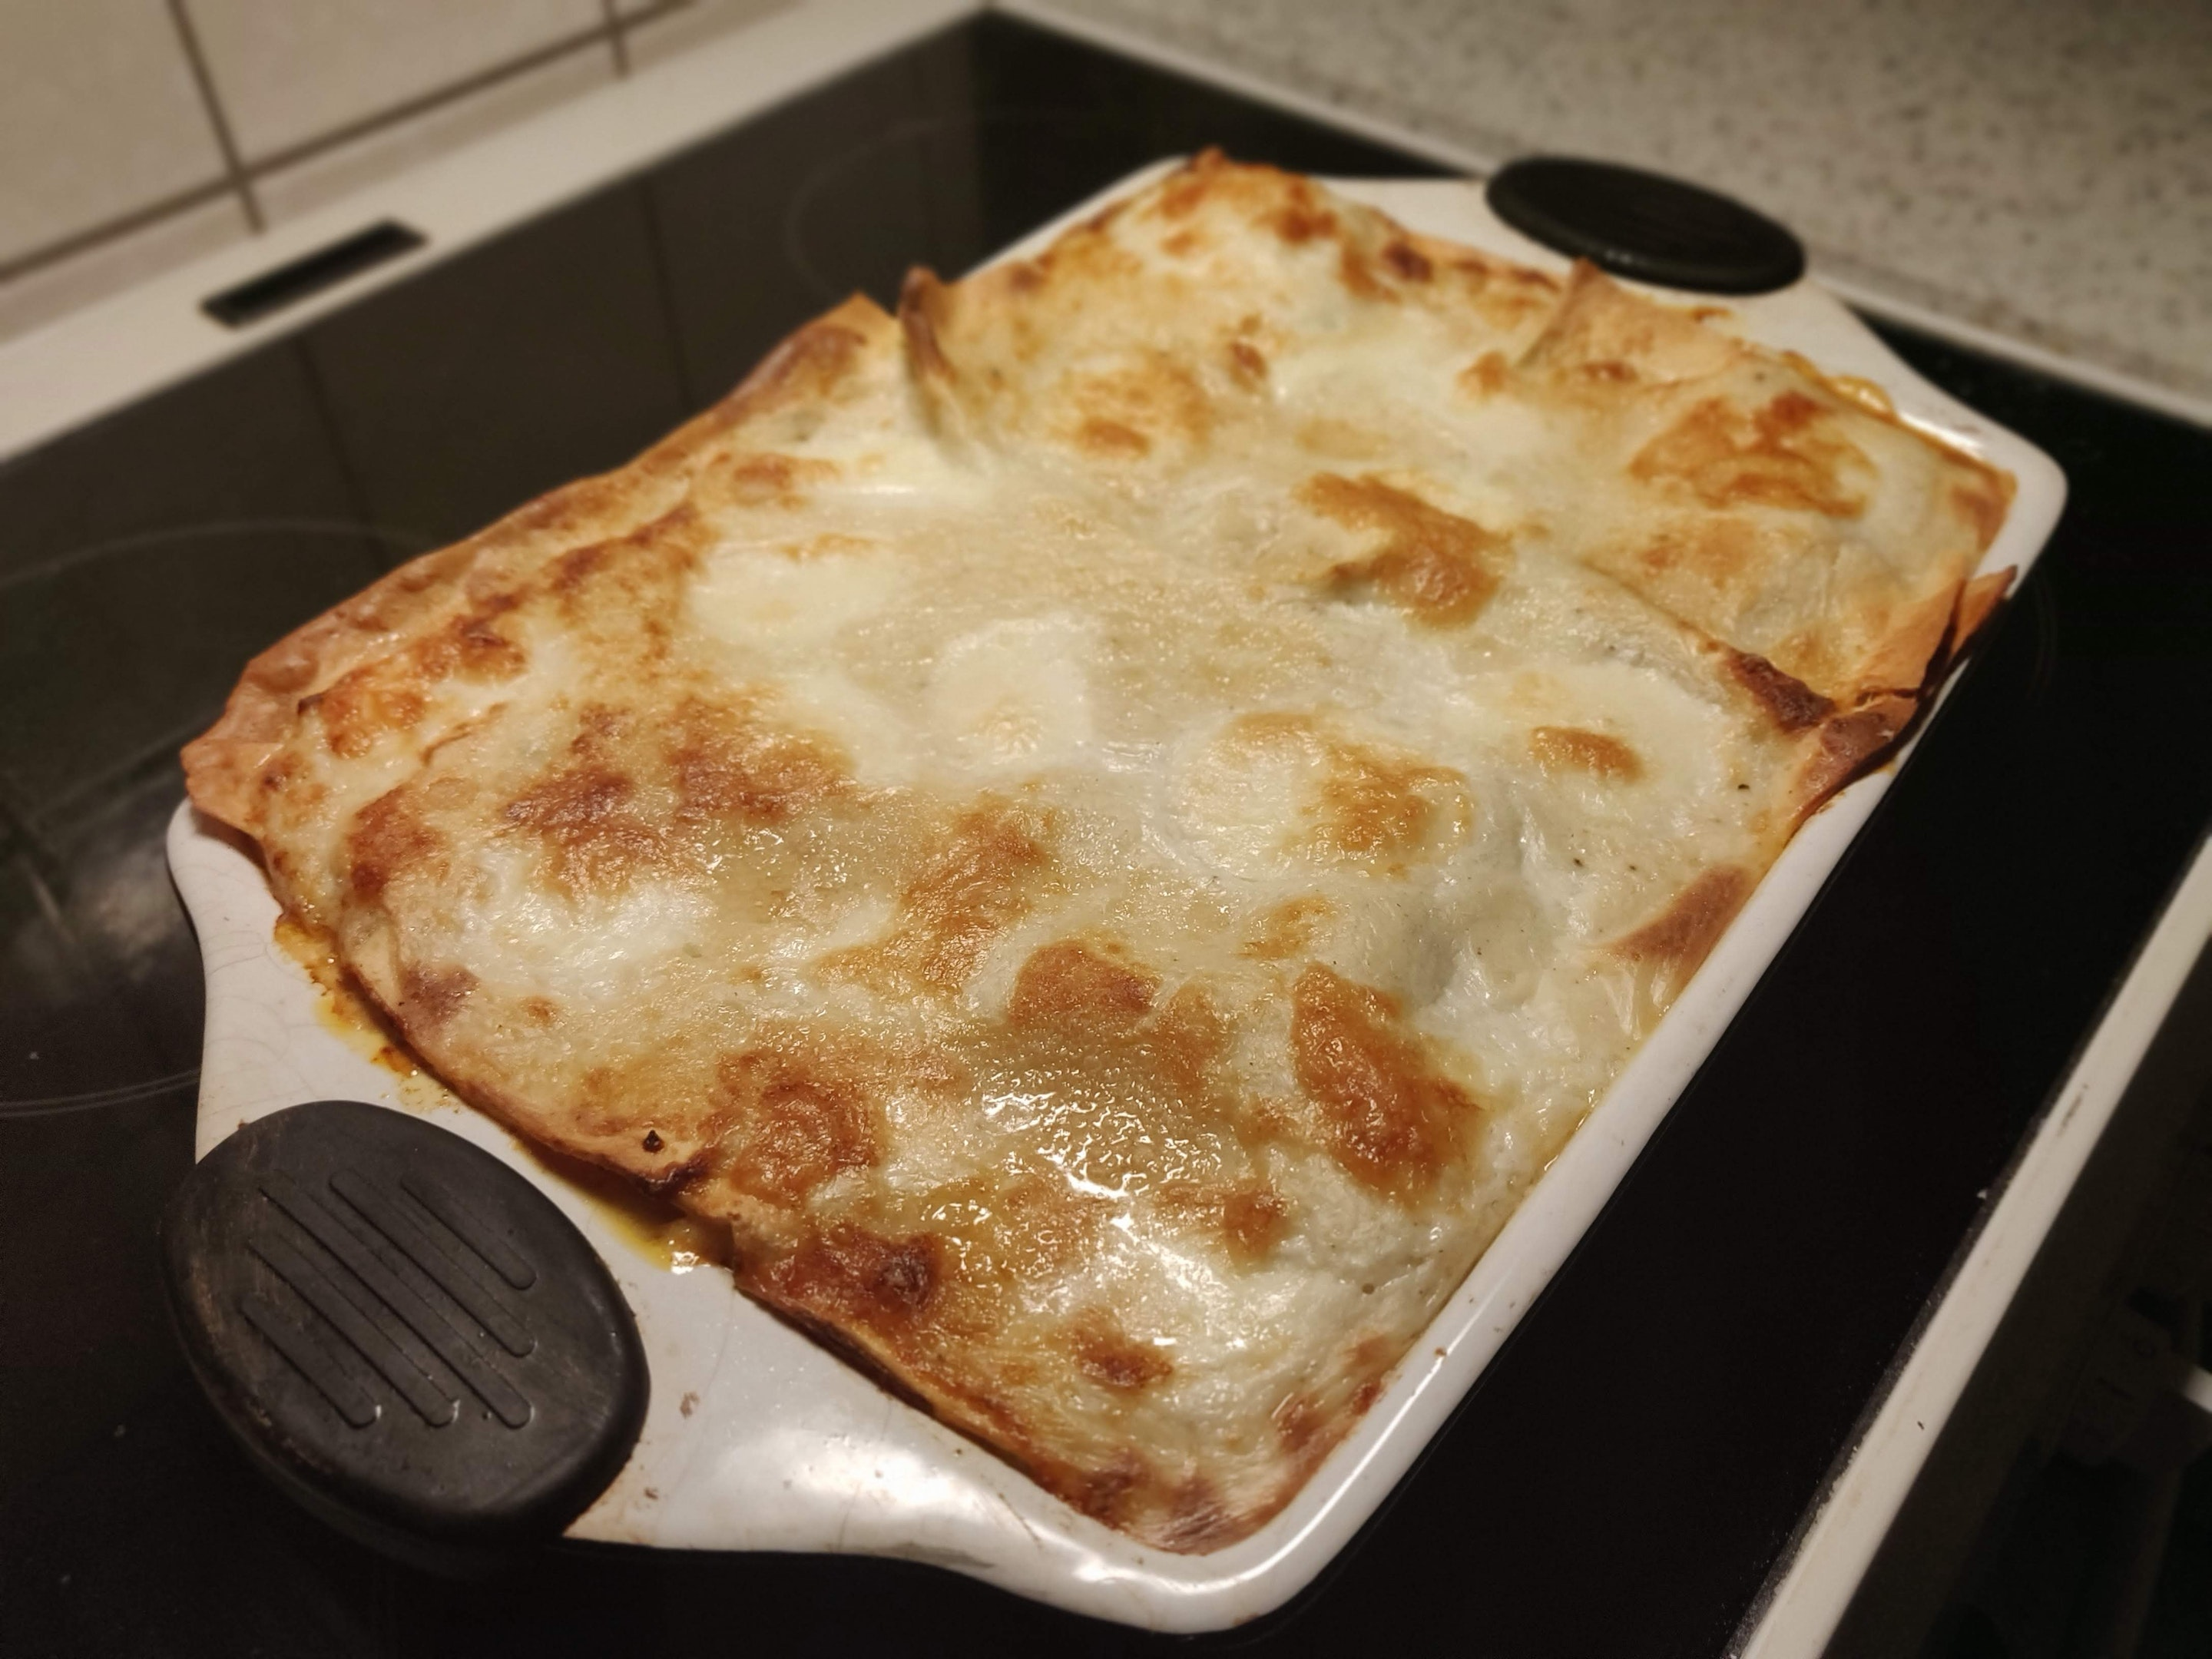 The finished lasagna